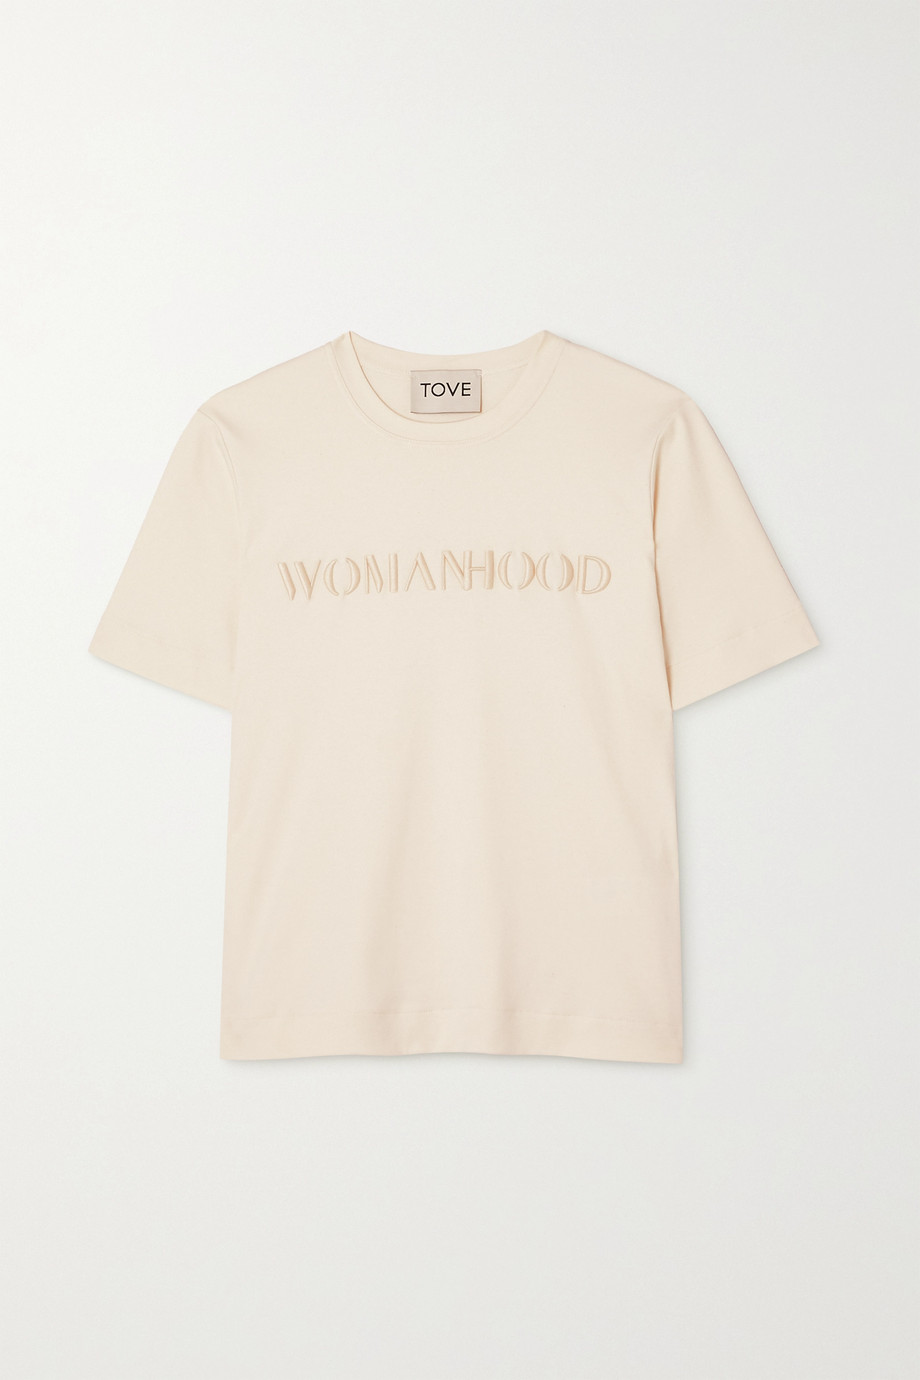 TOVE + NET SUSTAIN International Women's Day embroidered organic cotton-jersey T-shirt